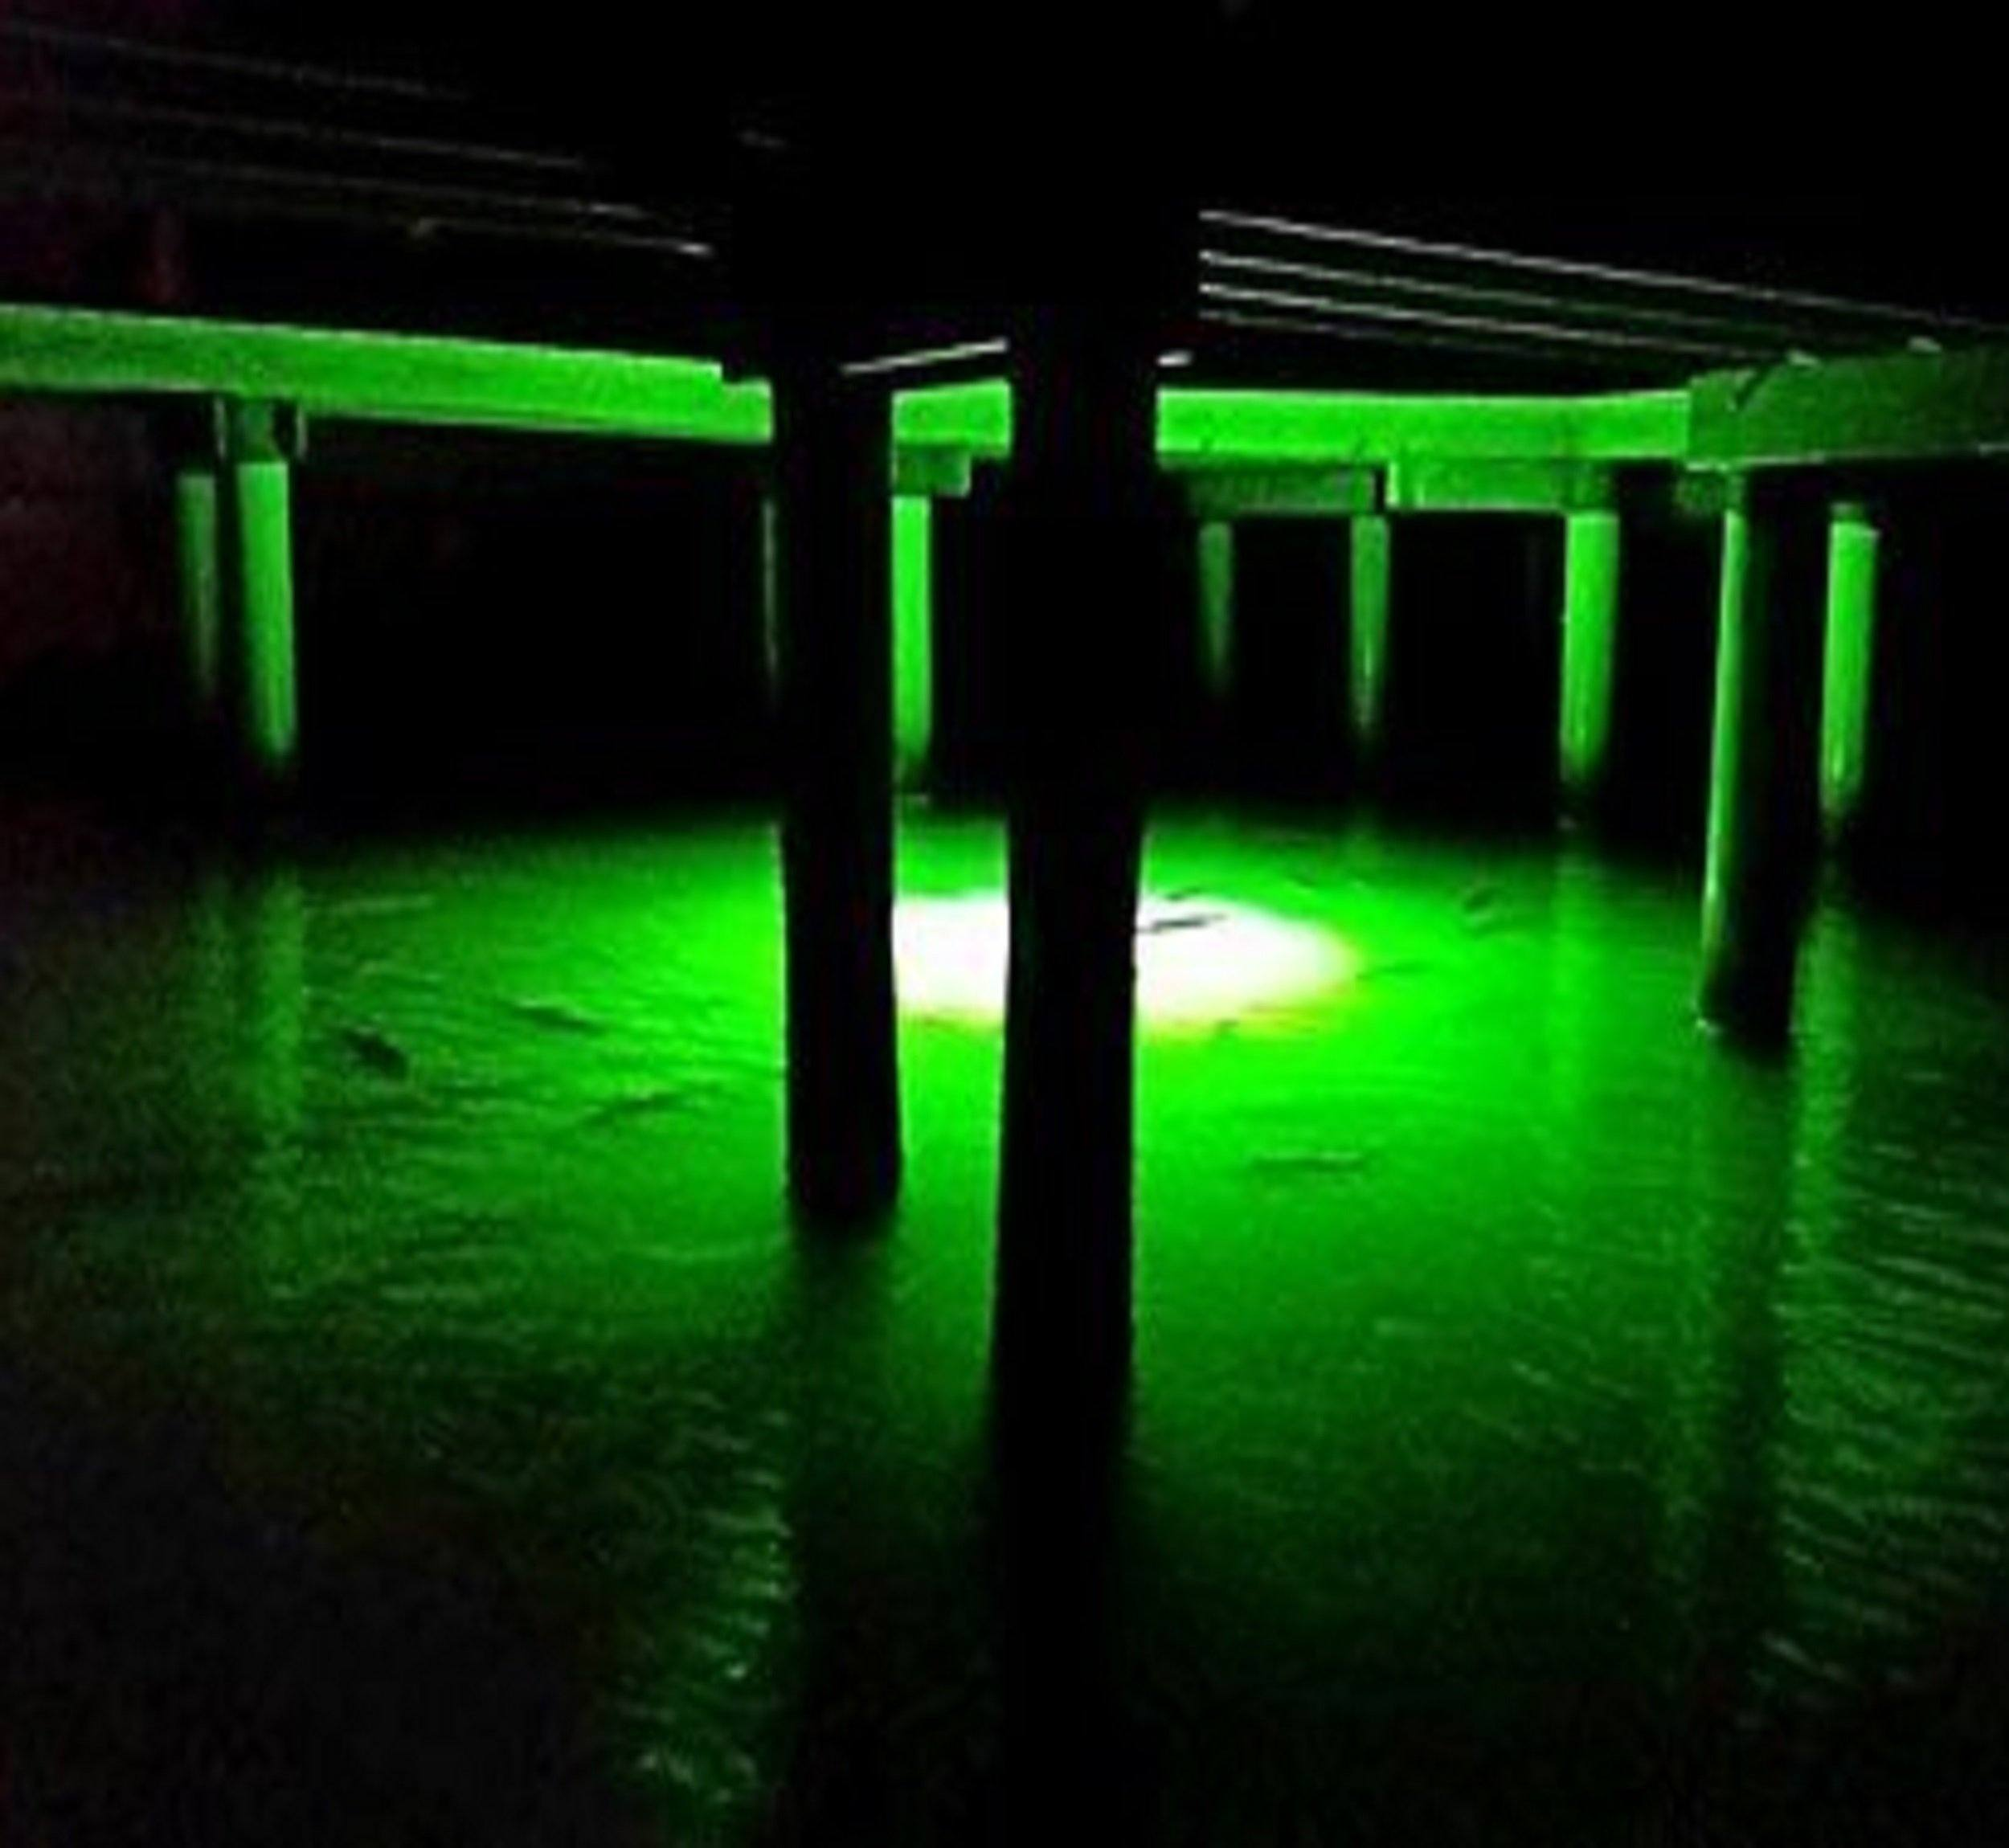 Green Dock 15000 Lumen LED Underwater Fishing Light with 110V Transformer 30ft Cable with 3 Prong Plug Fishing Lights Green Blob Outdoors